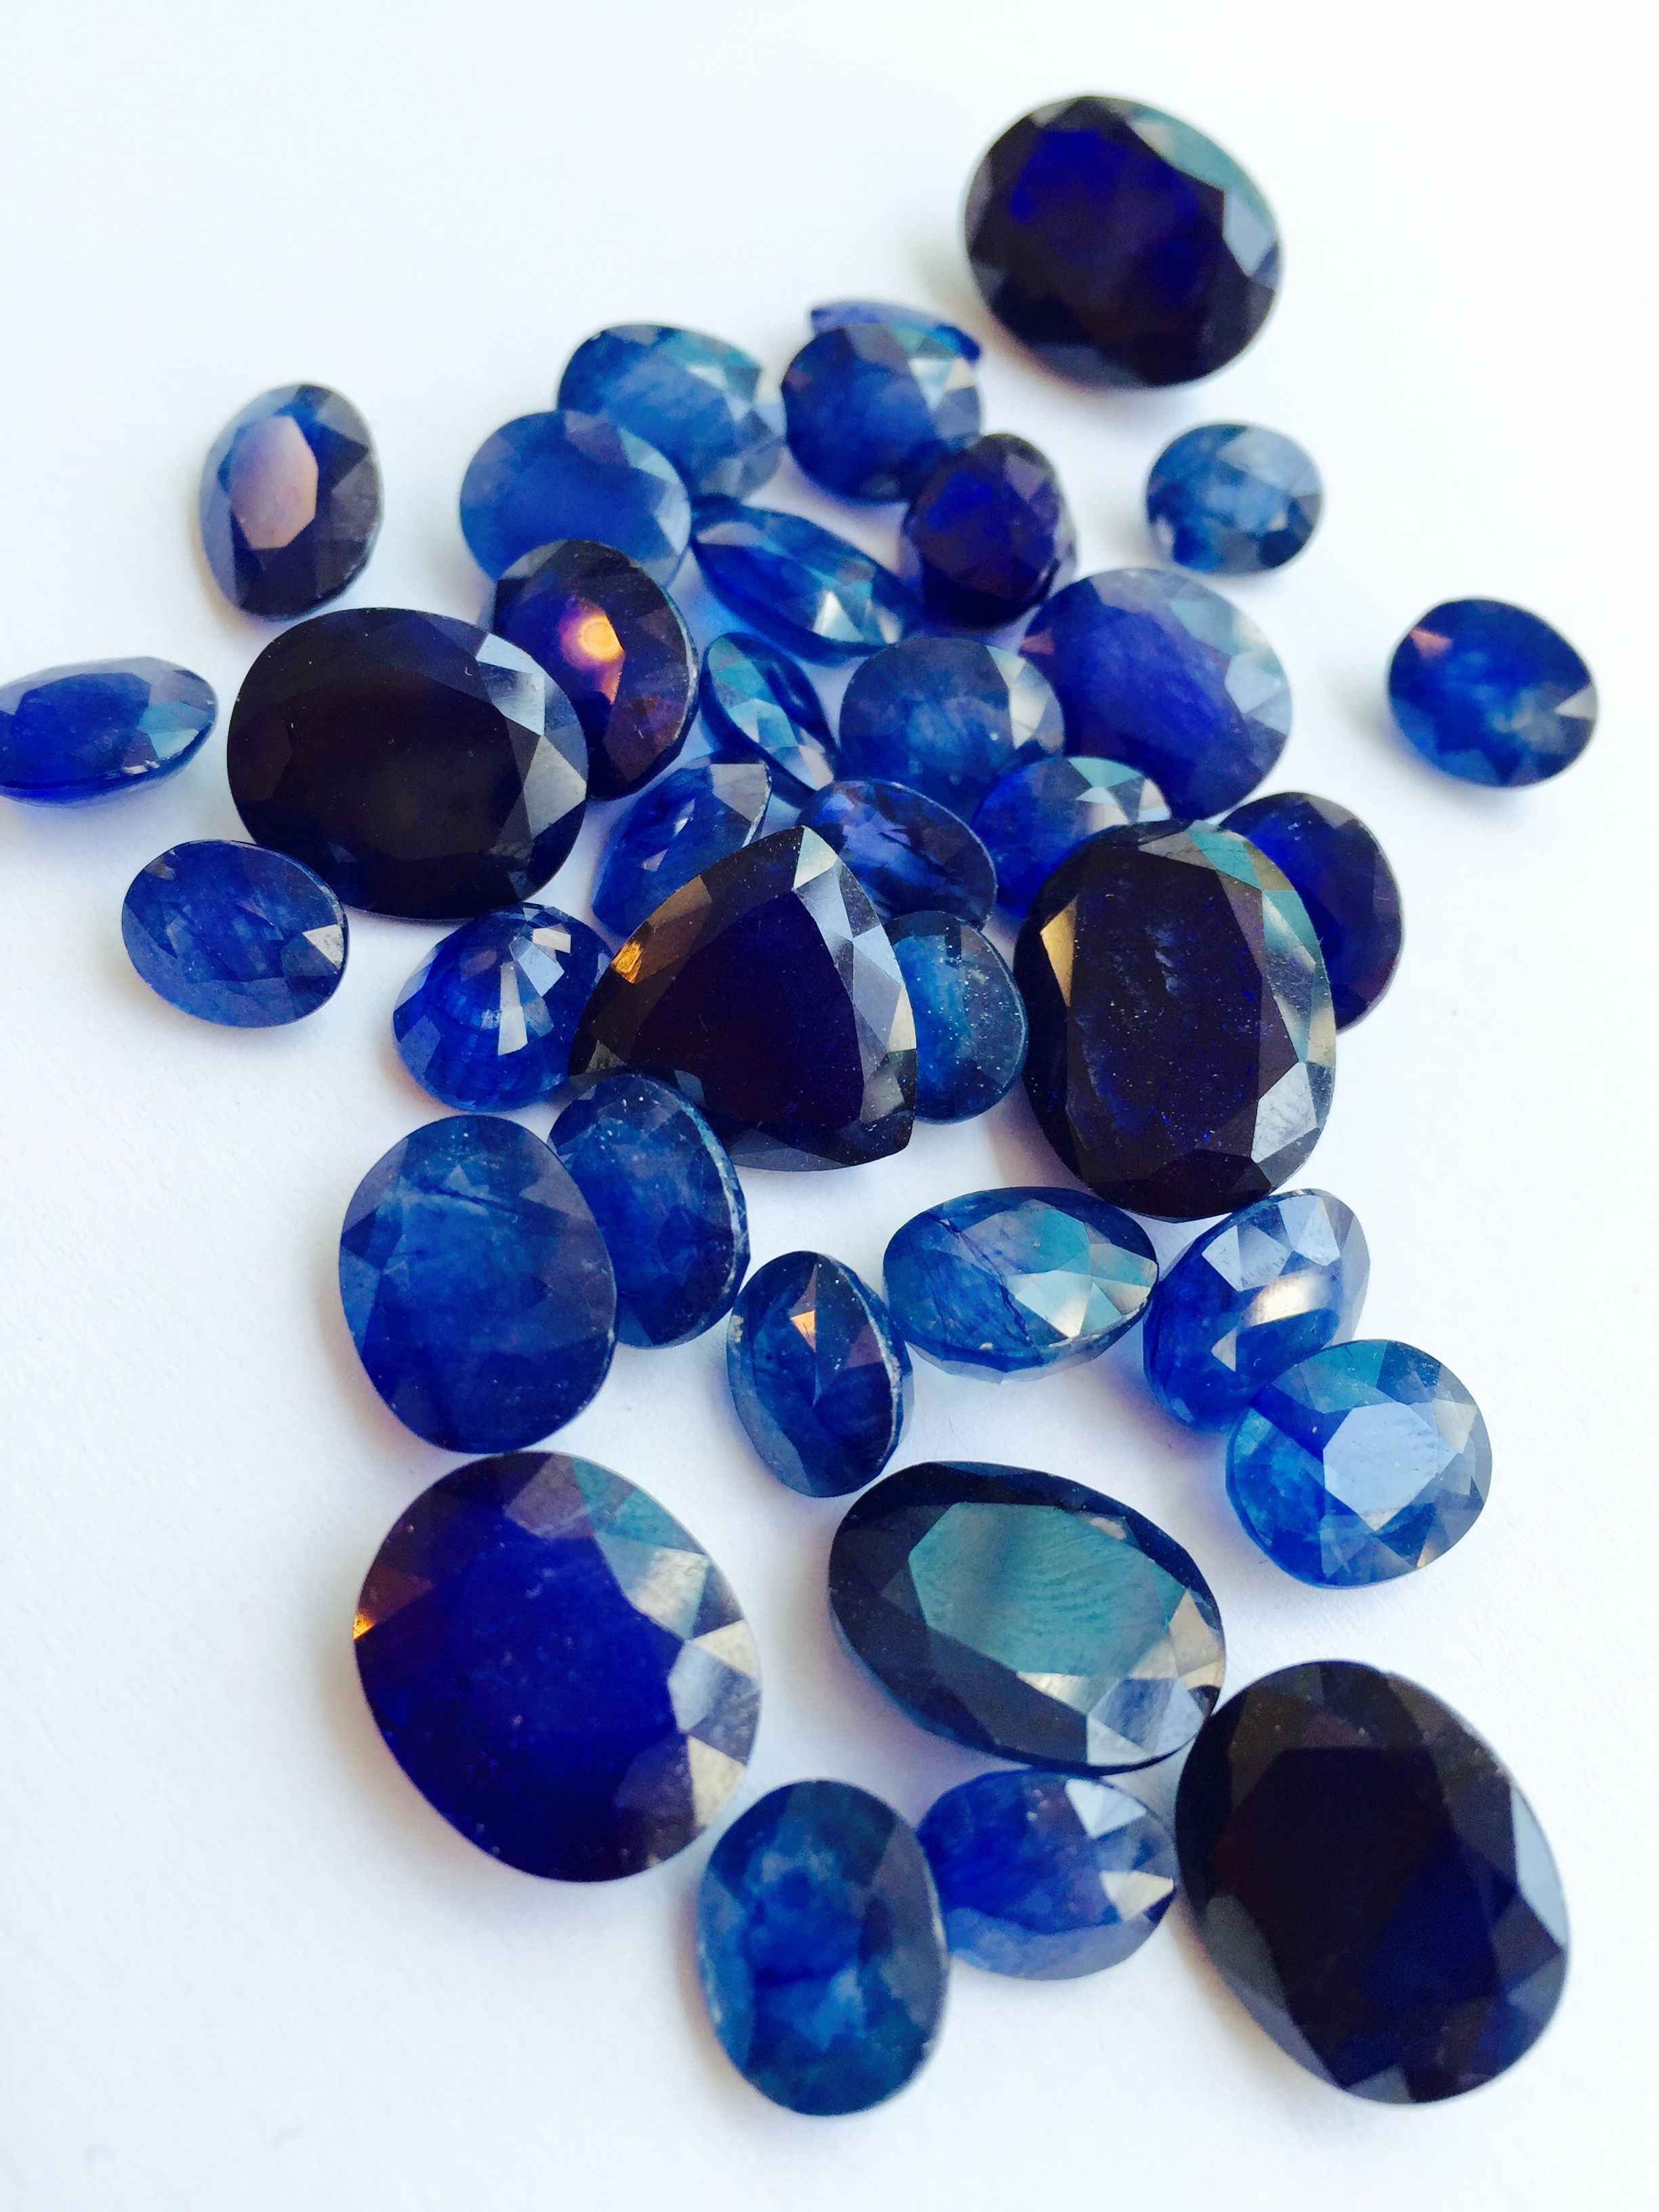 lanka gemstone sapphire sku gemstones shape lankan pear sri blue carat